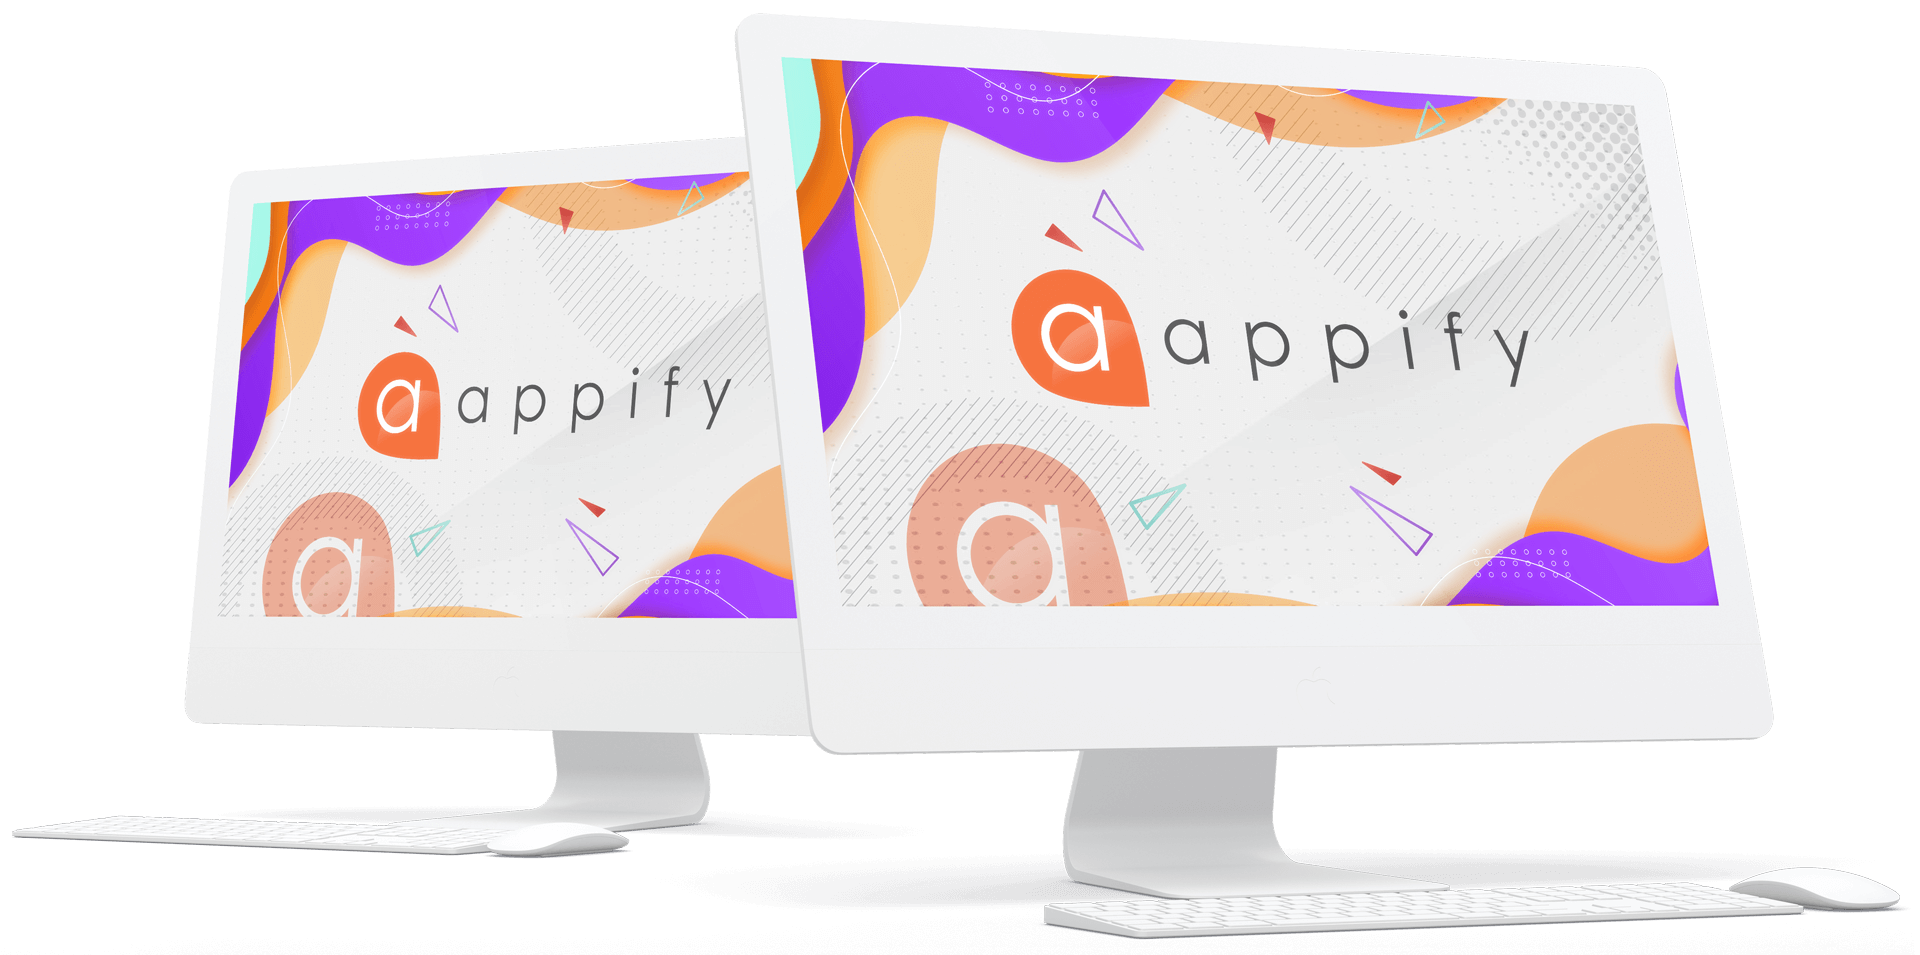 [GET] Amit Gaikwad – Appify Free Download